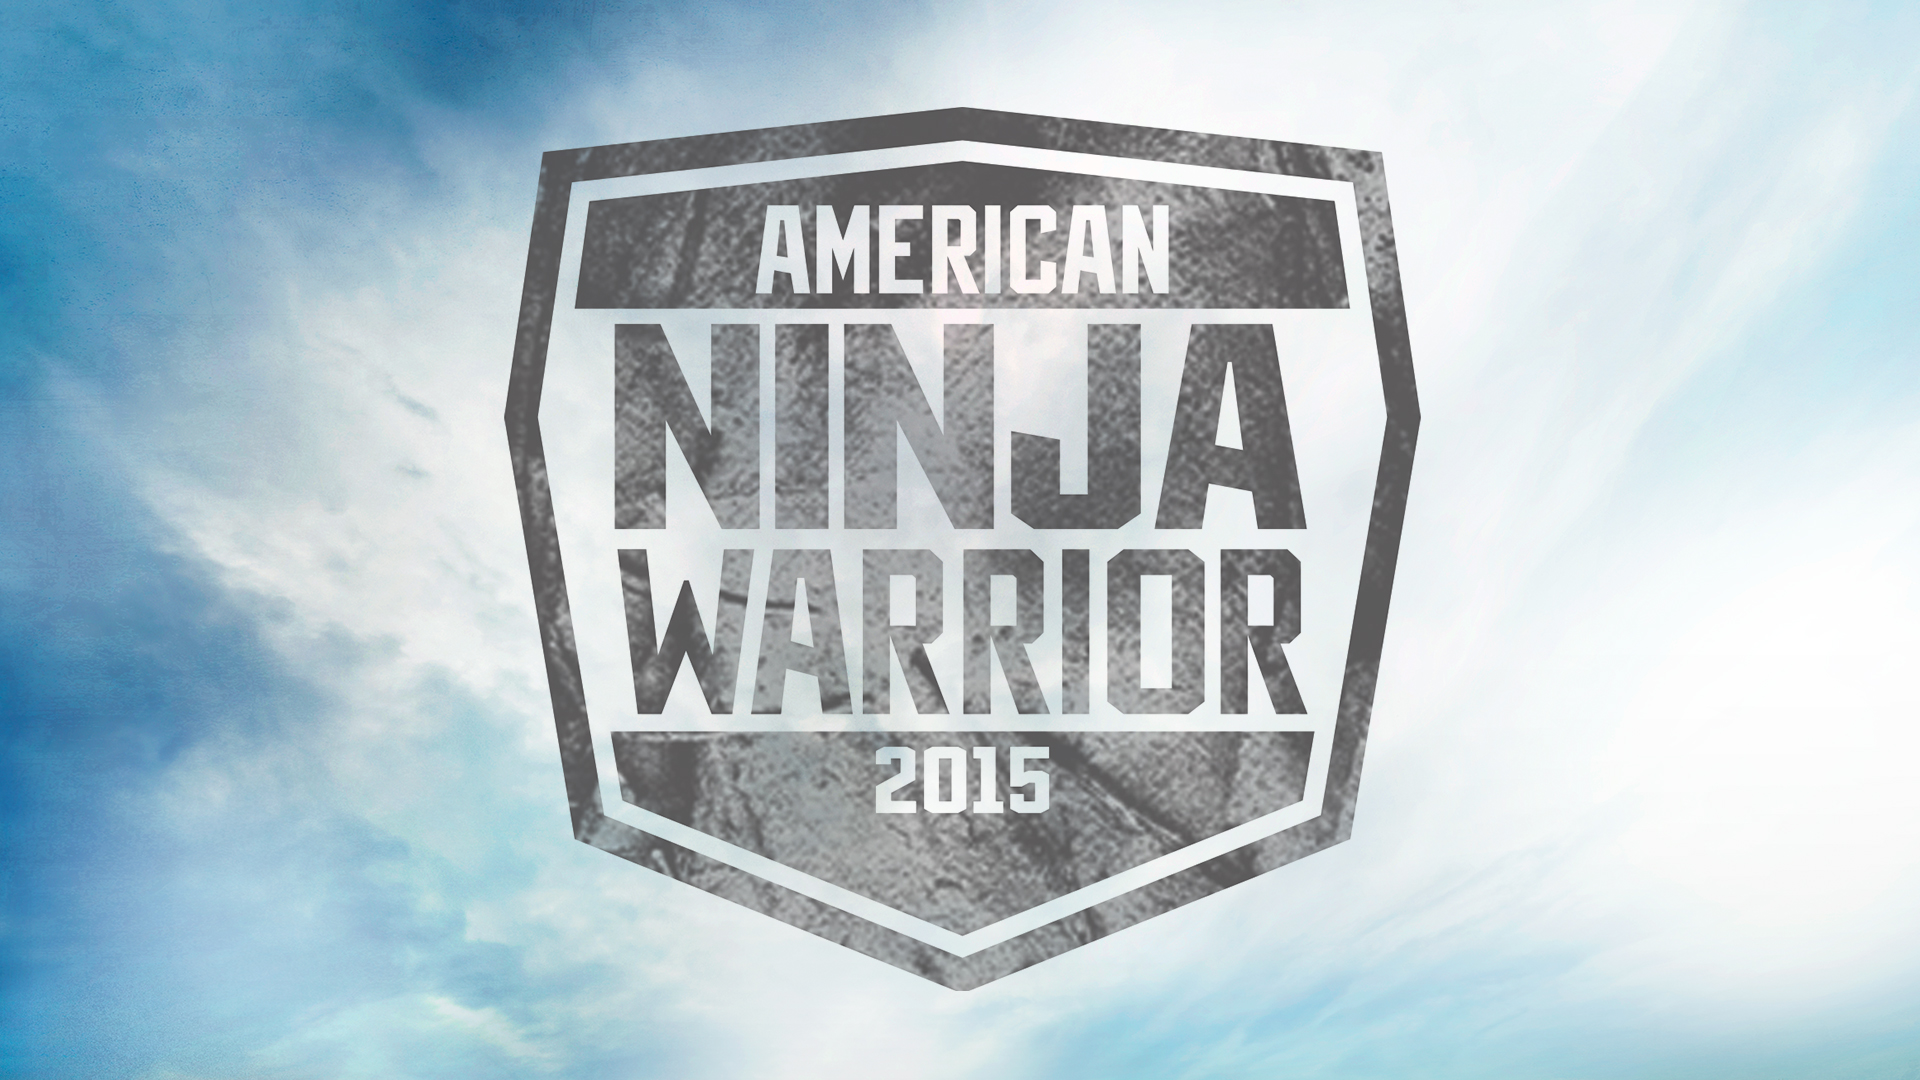 One Of Our Own Has A Family Member That Made It On American Ninja Warrior